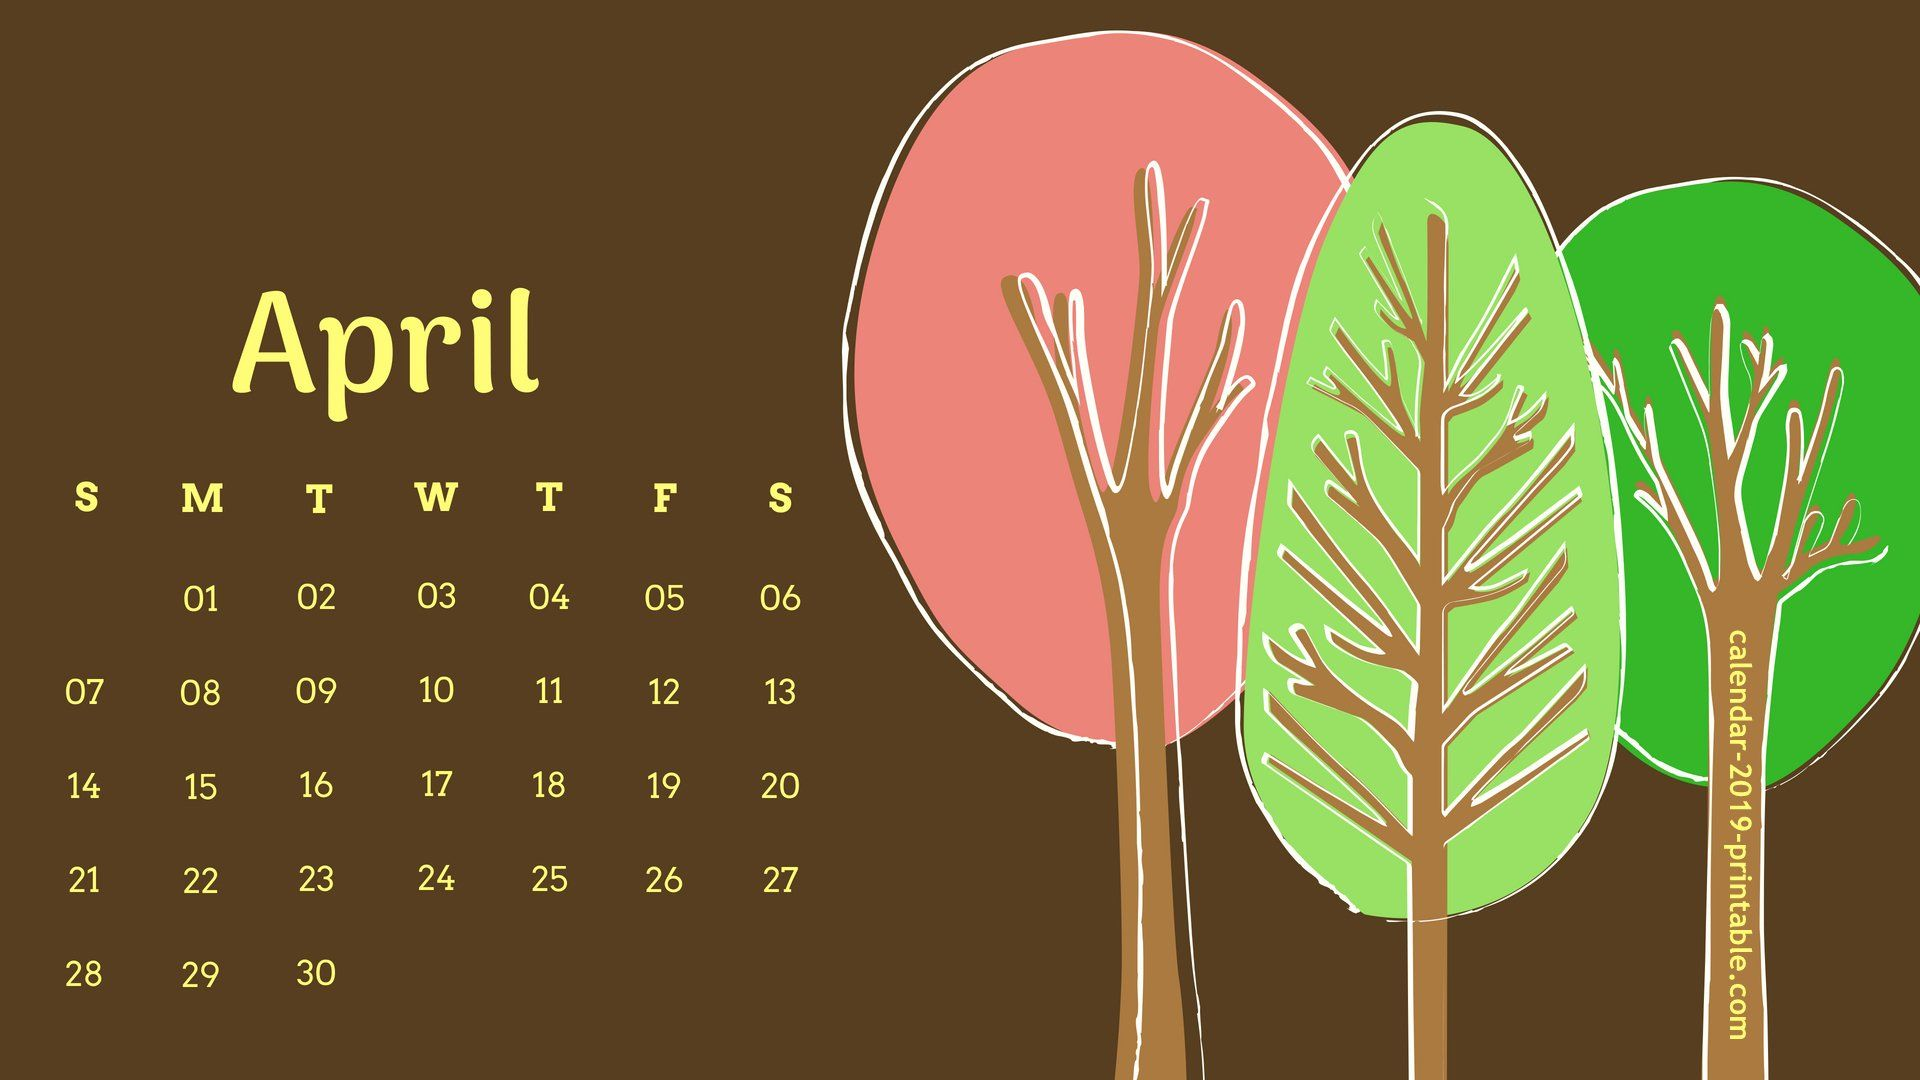 Desktop Calendar For April 2019